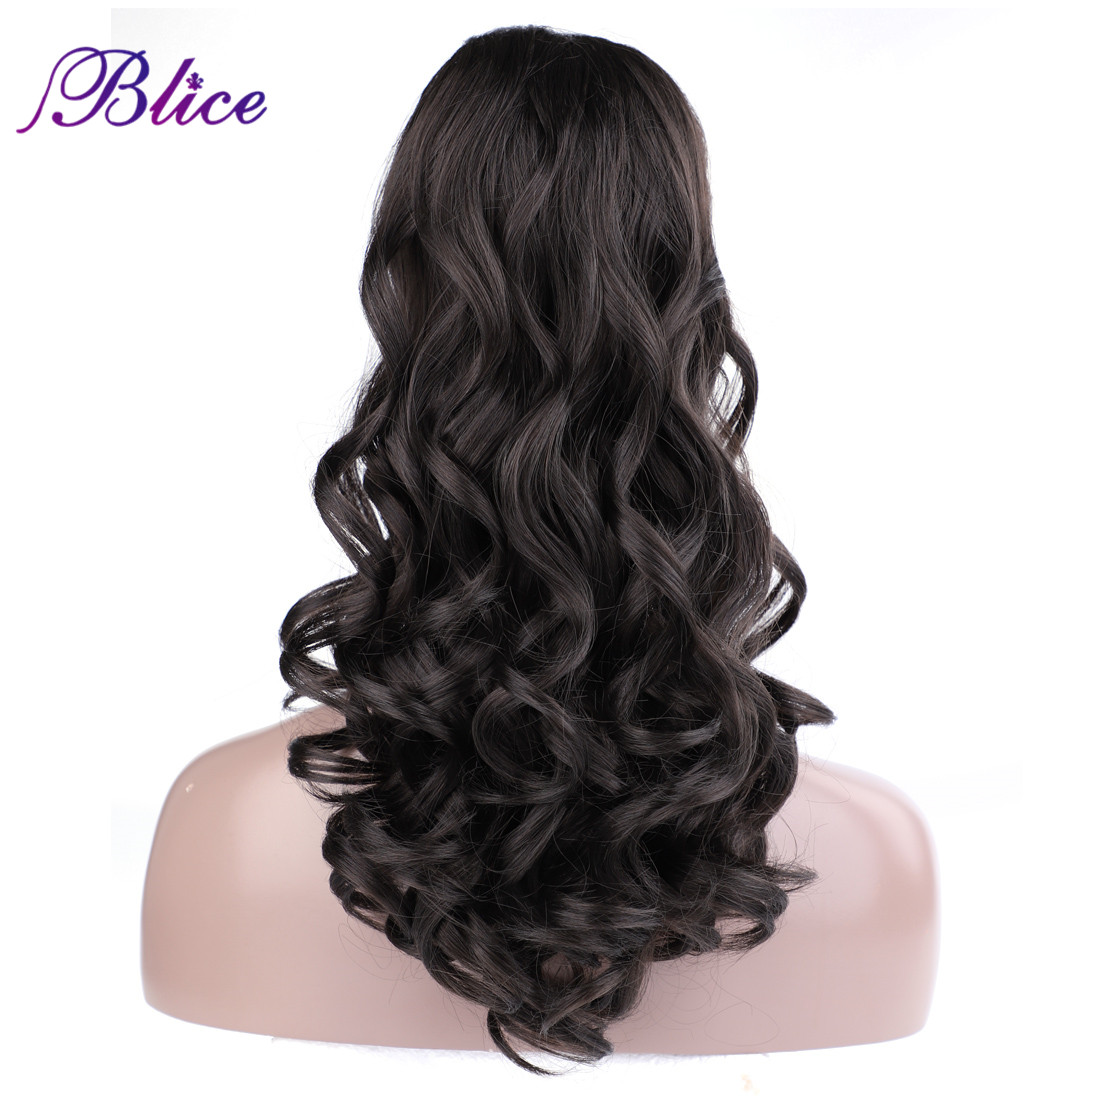 Blice Synthetic Curly Ponytail 20